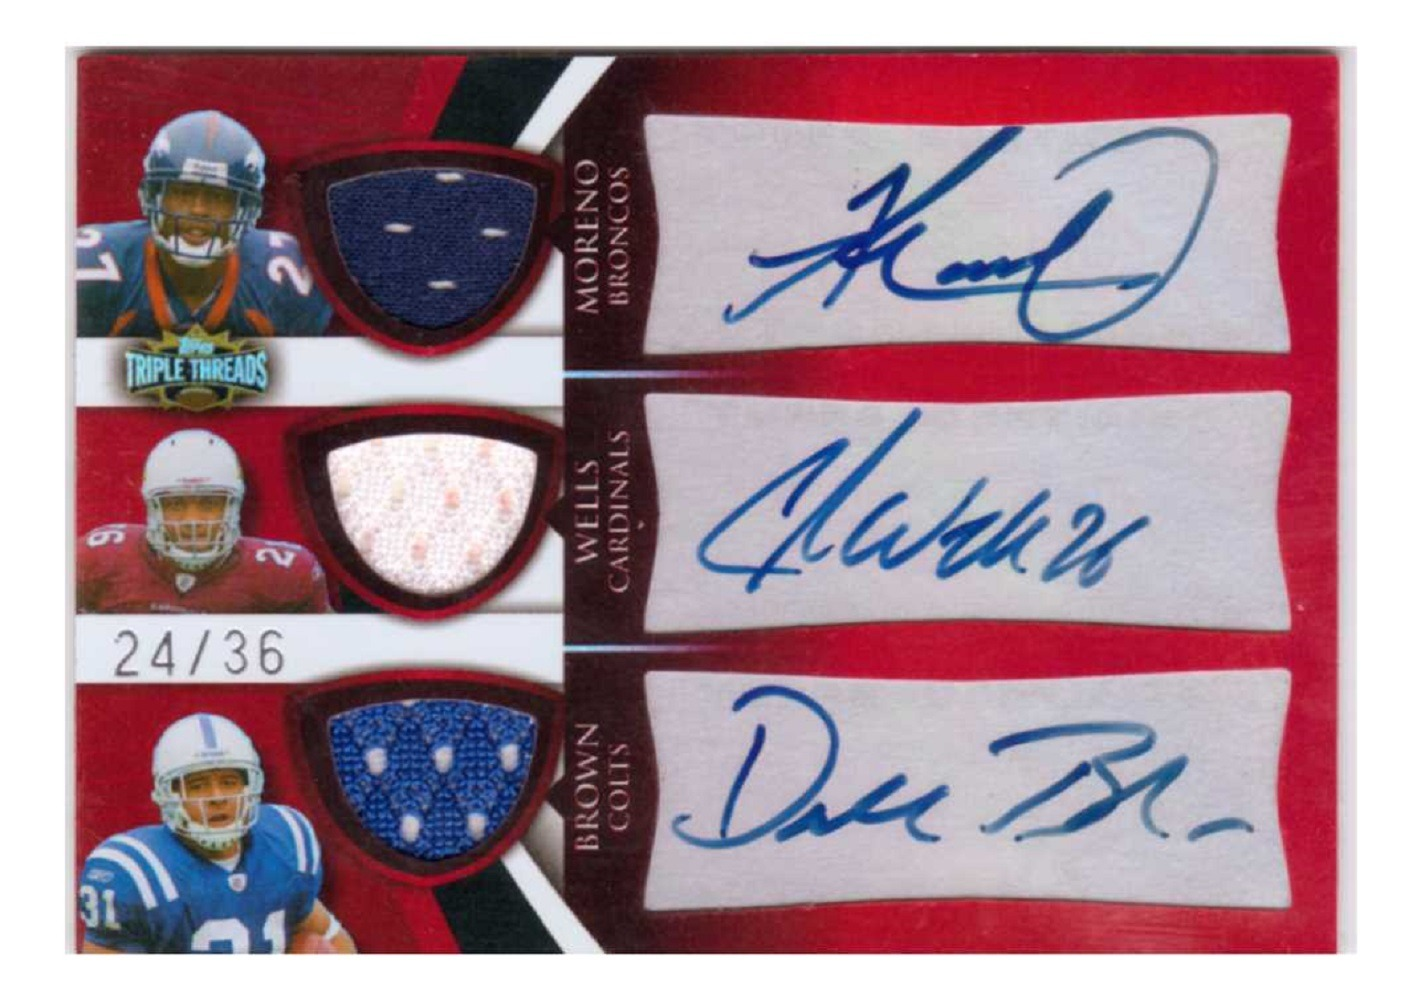 Knowshon Moreno Chris Wells Donald Brown 2009 Triple Threads Autograph Red RC/36 Jersey Relic Rookie Combos Auto Topps